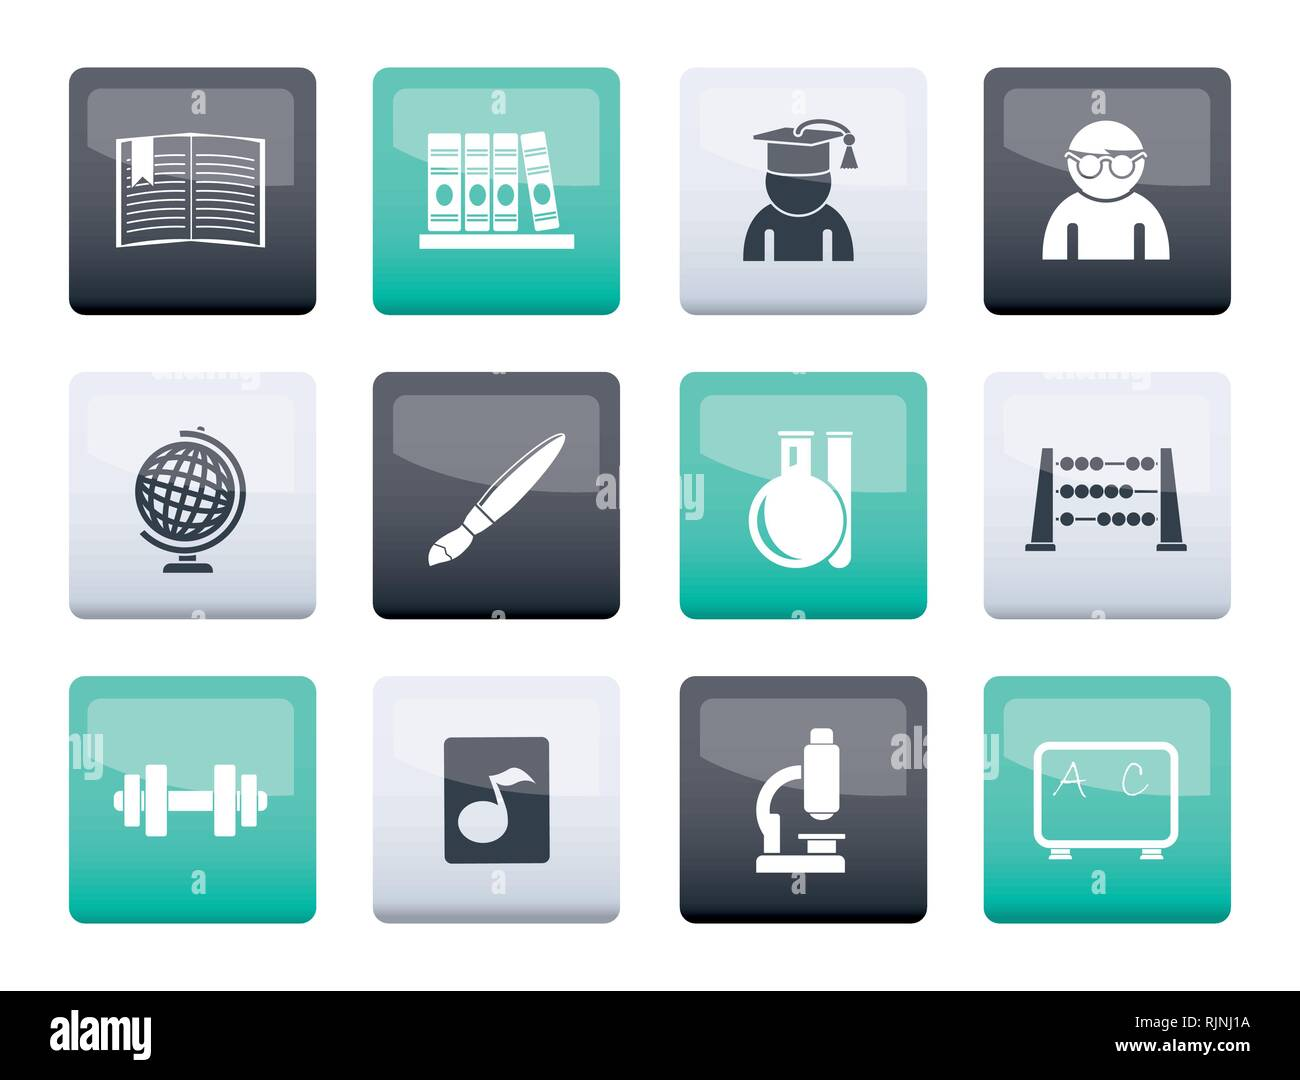 School and education icons over color background - vector icon set - Stock Vector